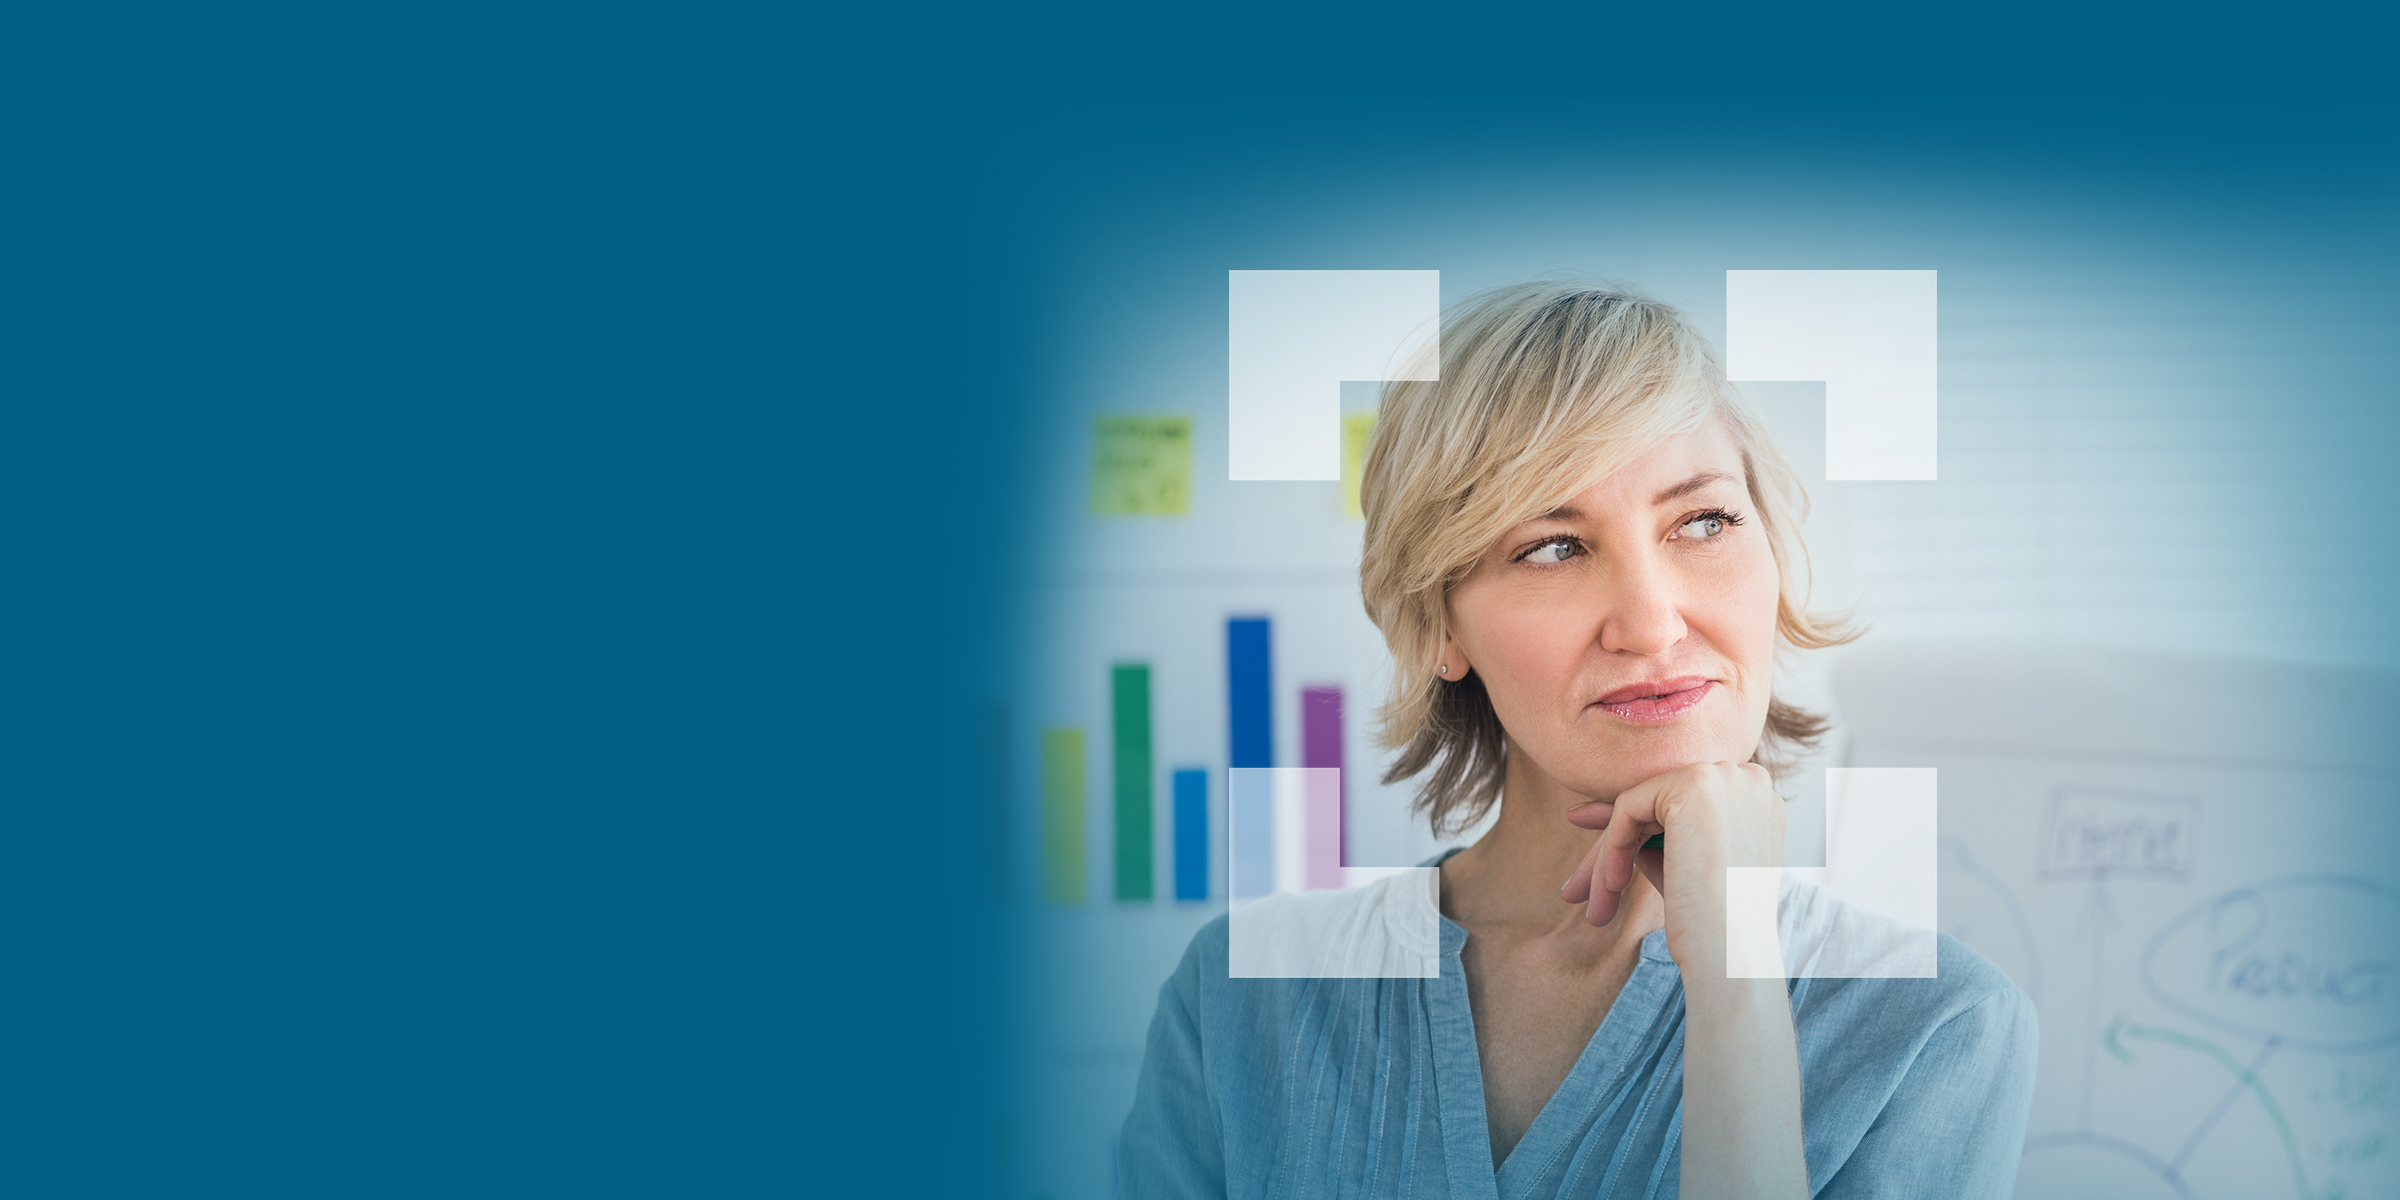 Woman pondering with hand on chin and colorful graph background